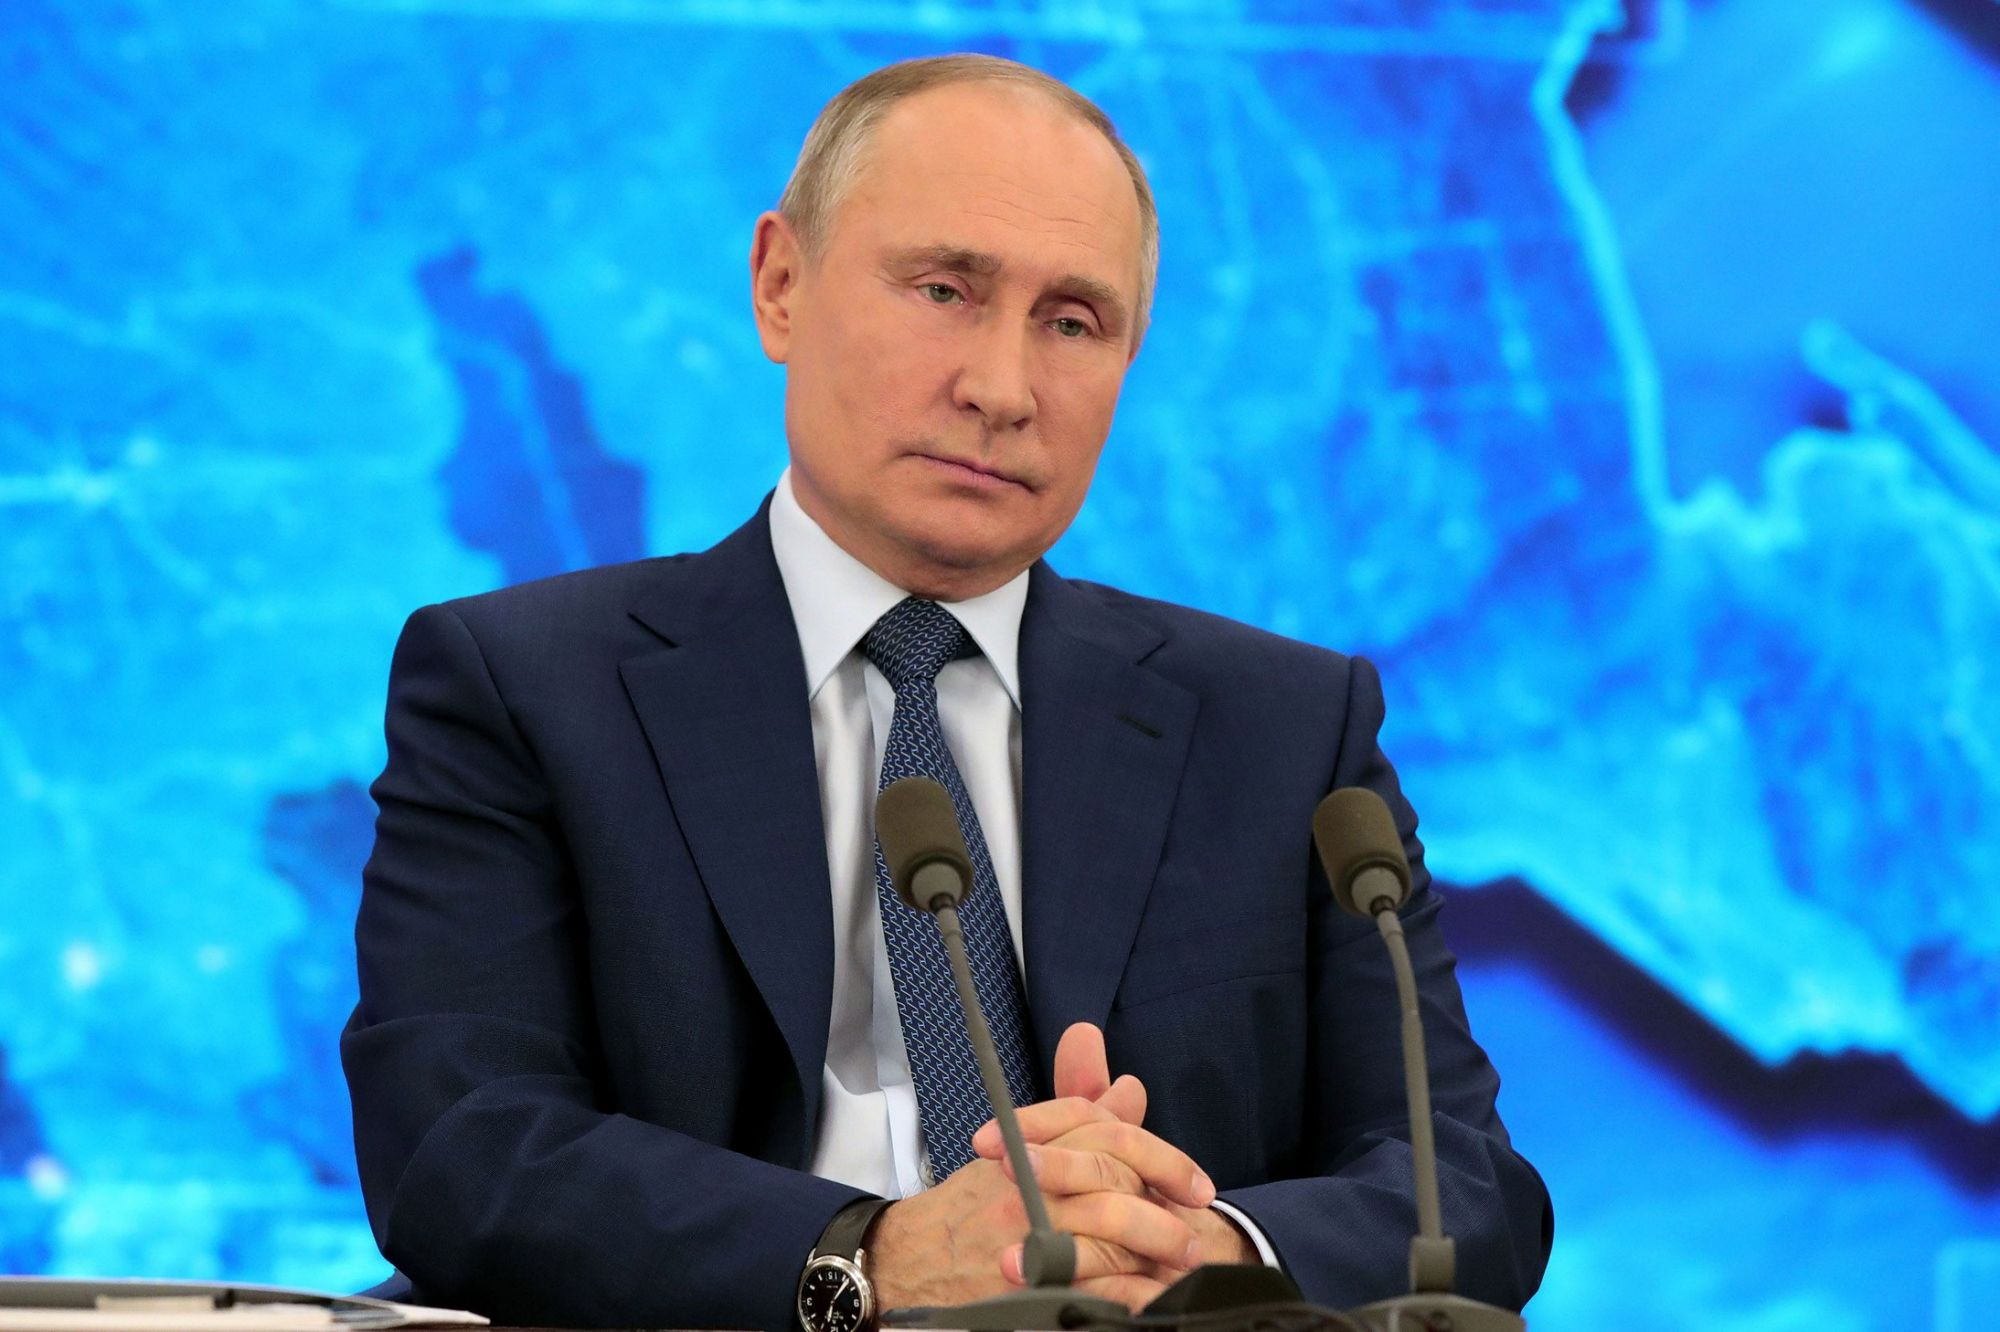 Putin holds court in annual call-in show: what to expect